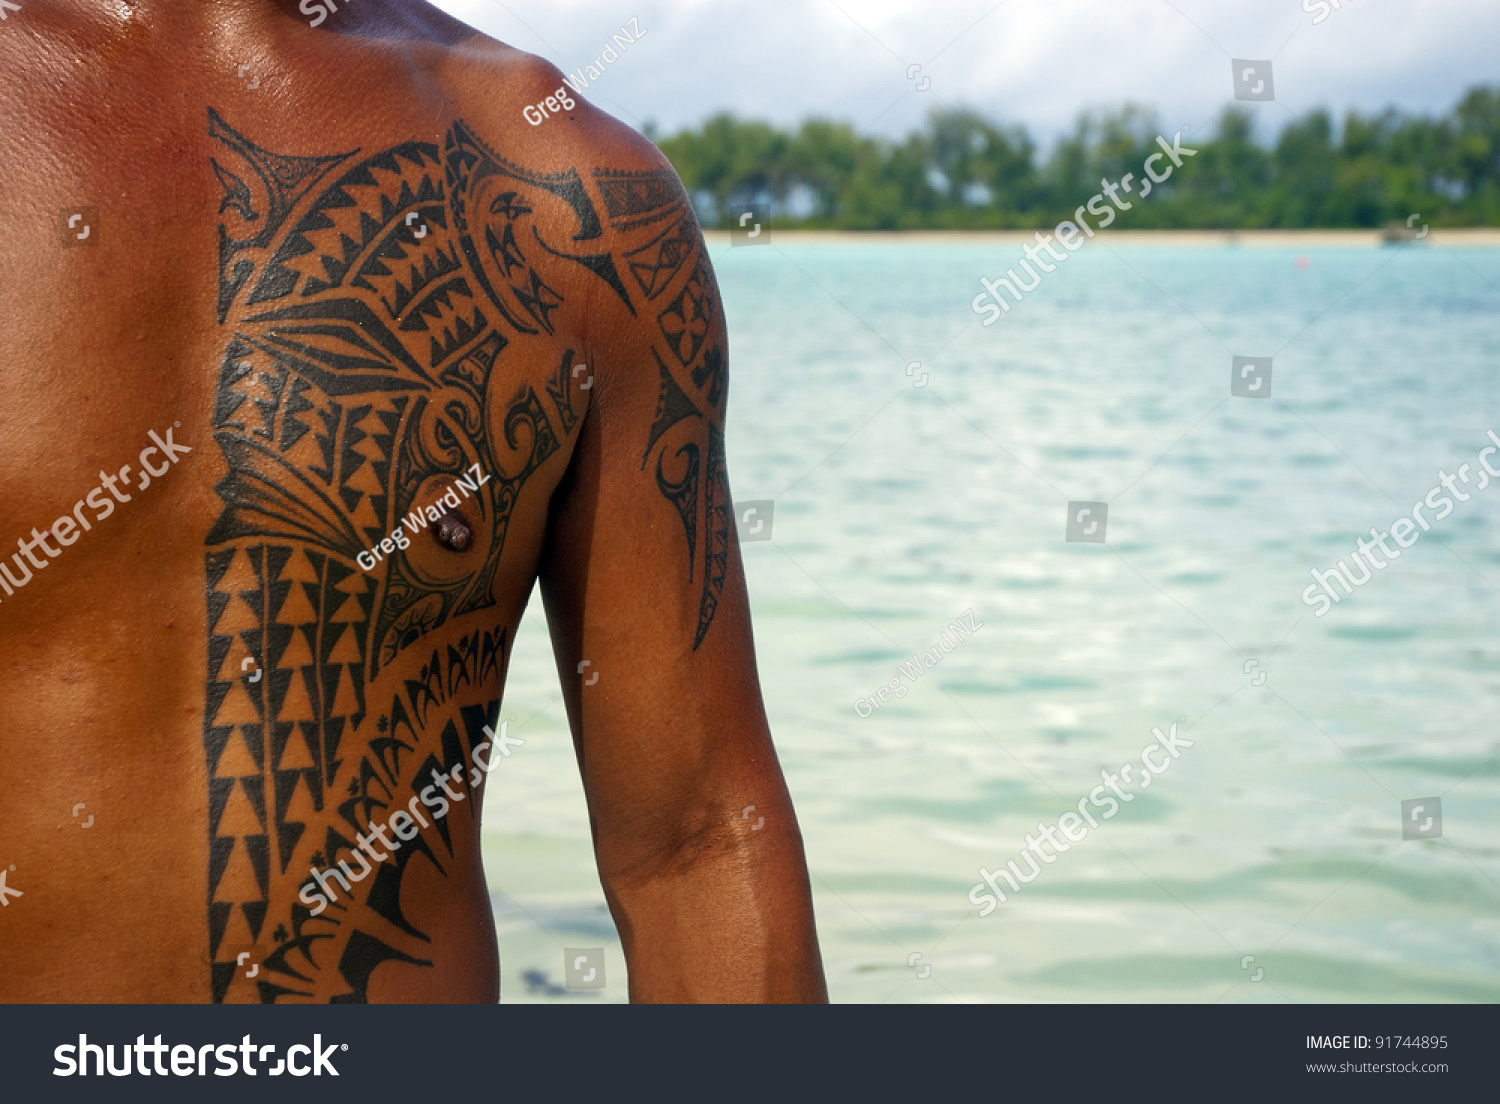 cook islands men